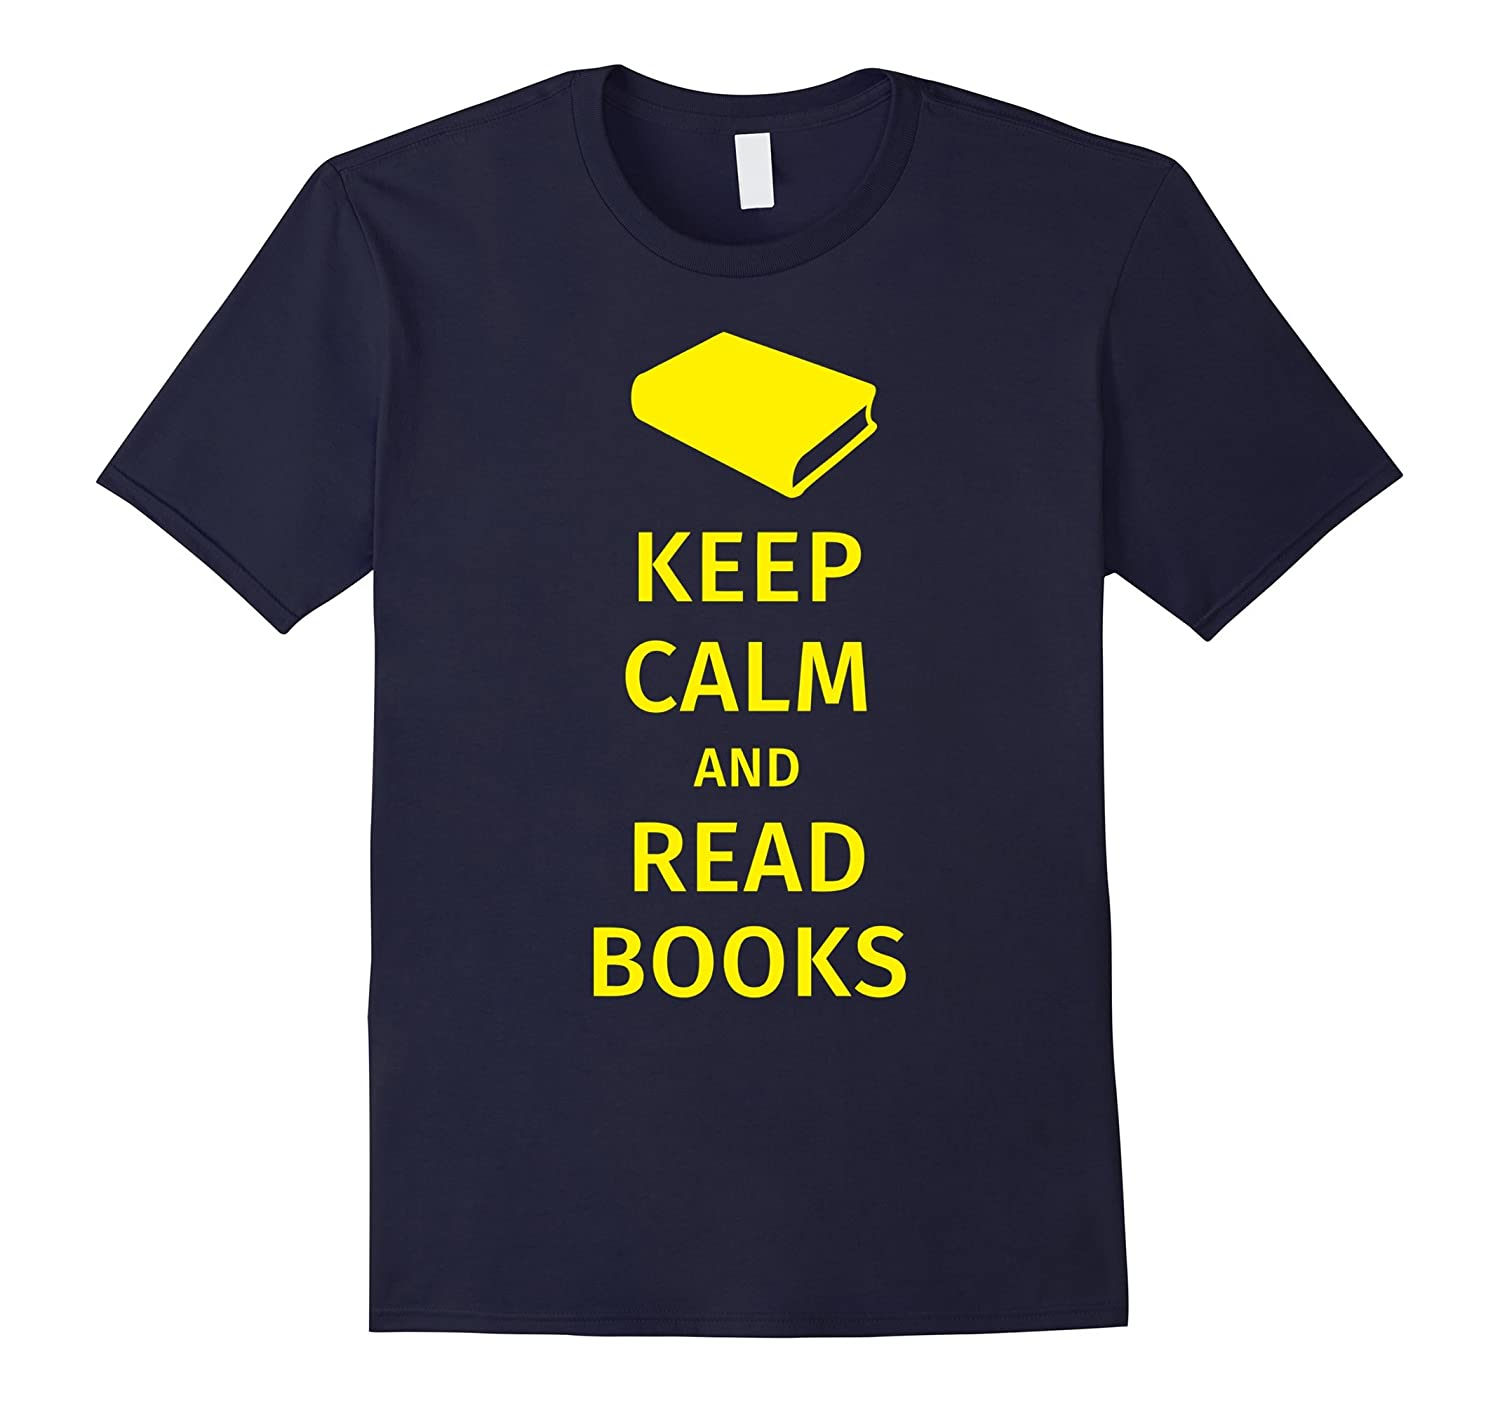 Book lover clothes - book worm gifts - keep calm and read-CD